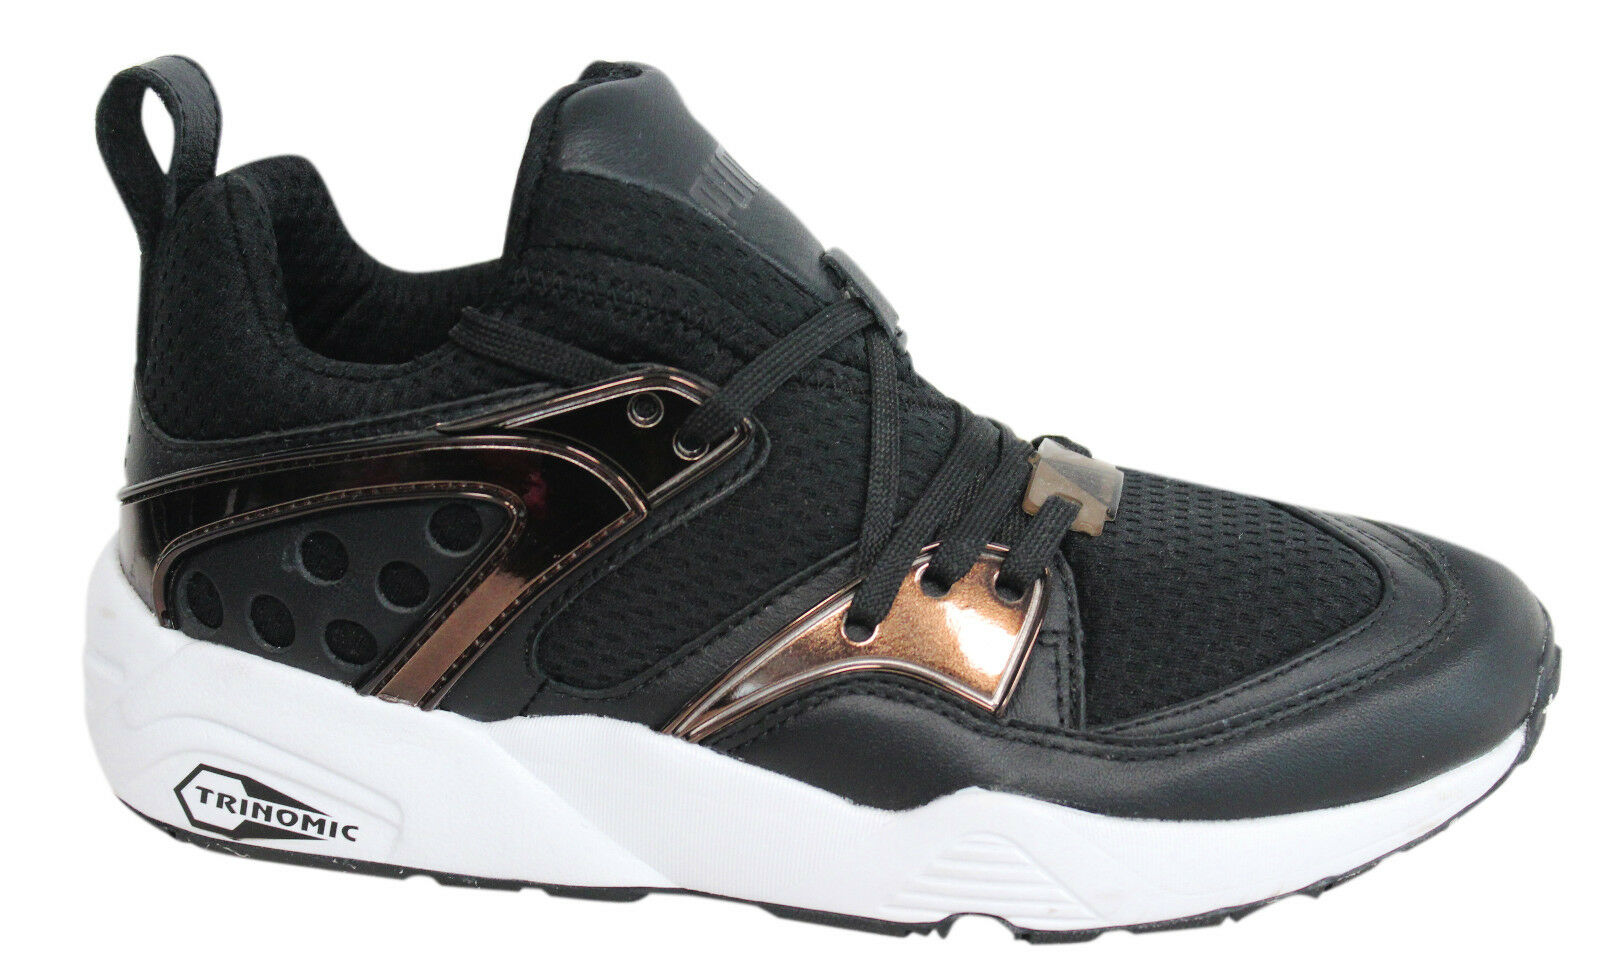 Puma Trinomic BOG Blaze Of Glory Metallic Mens Lo Trainers Trainers Trainers Lace Up 361851 04 M3 83aed8